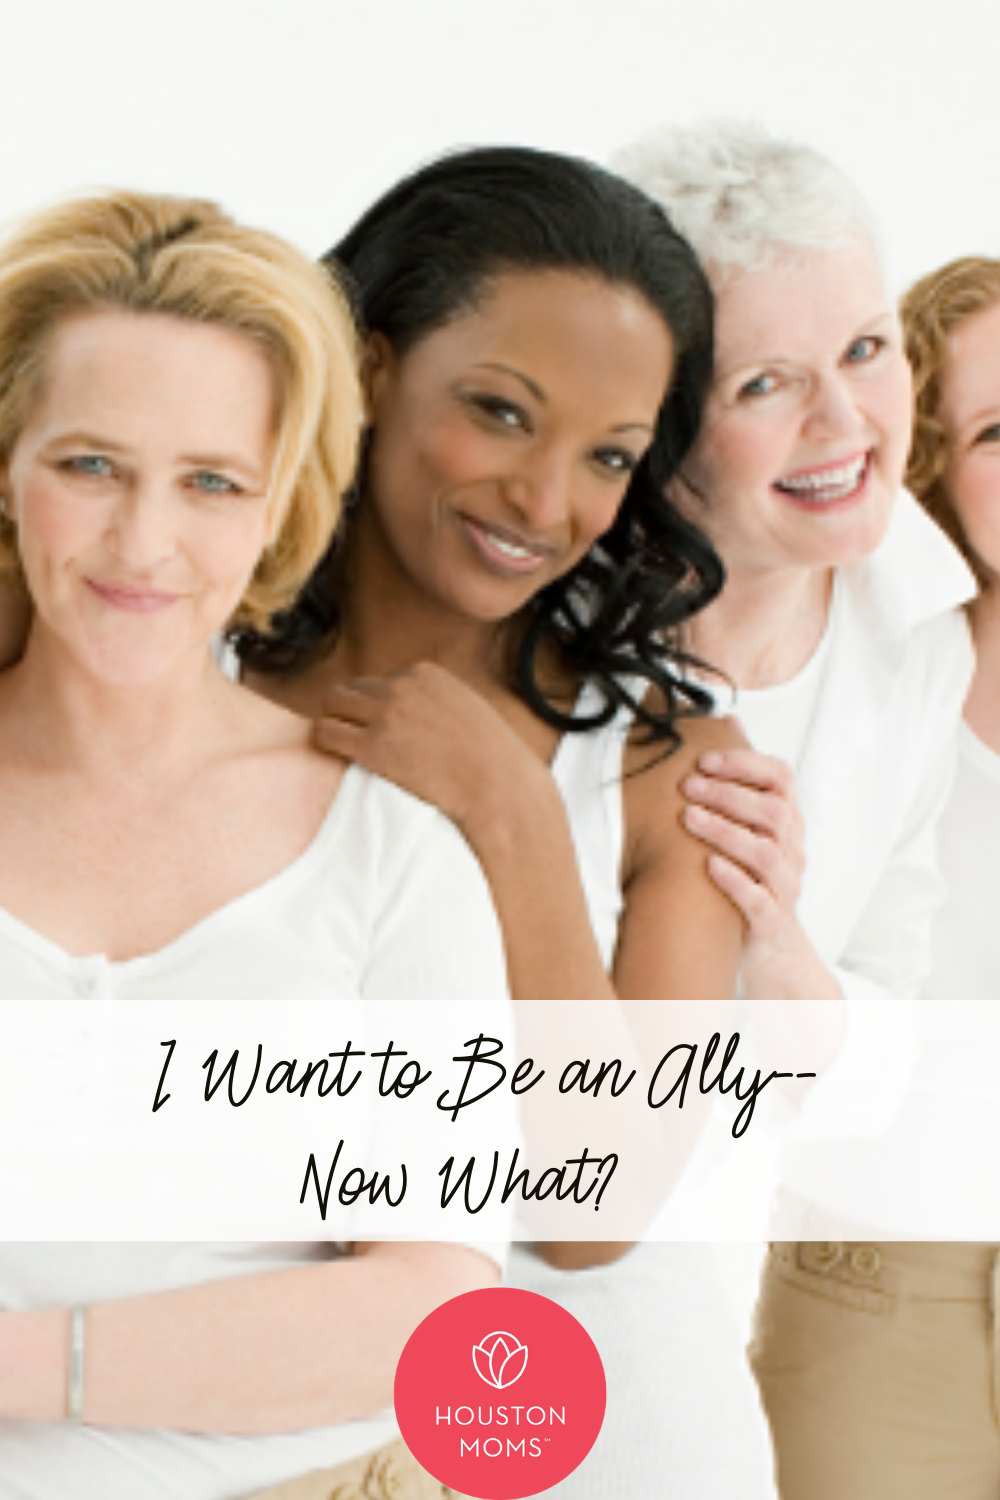 """Houston Moms Blog """"I Want to Be an Ally-- Now What?"""" #houstonmoms #houstonmomsblog #momsaroundhouston"""